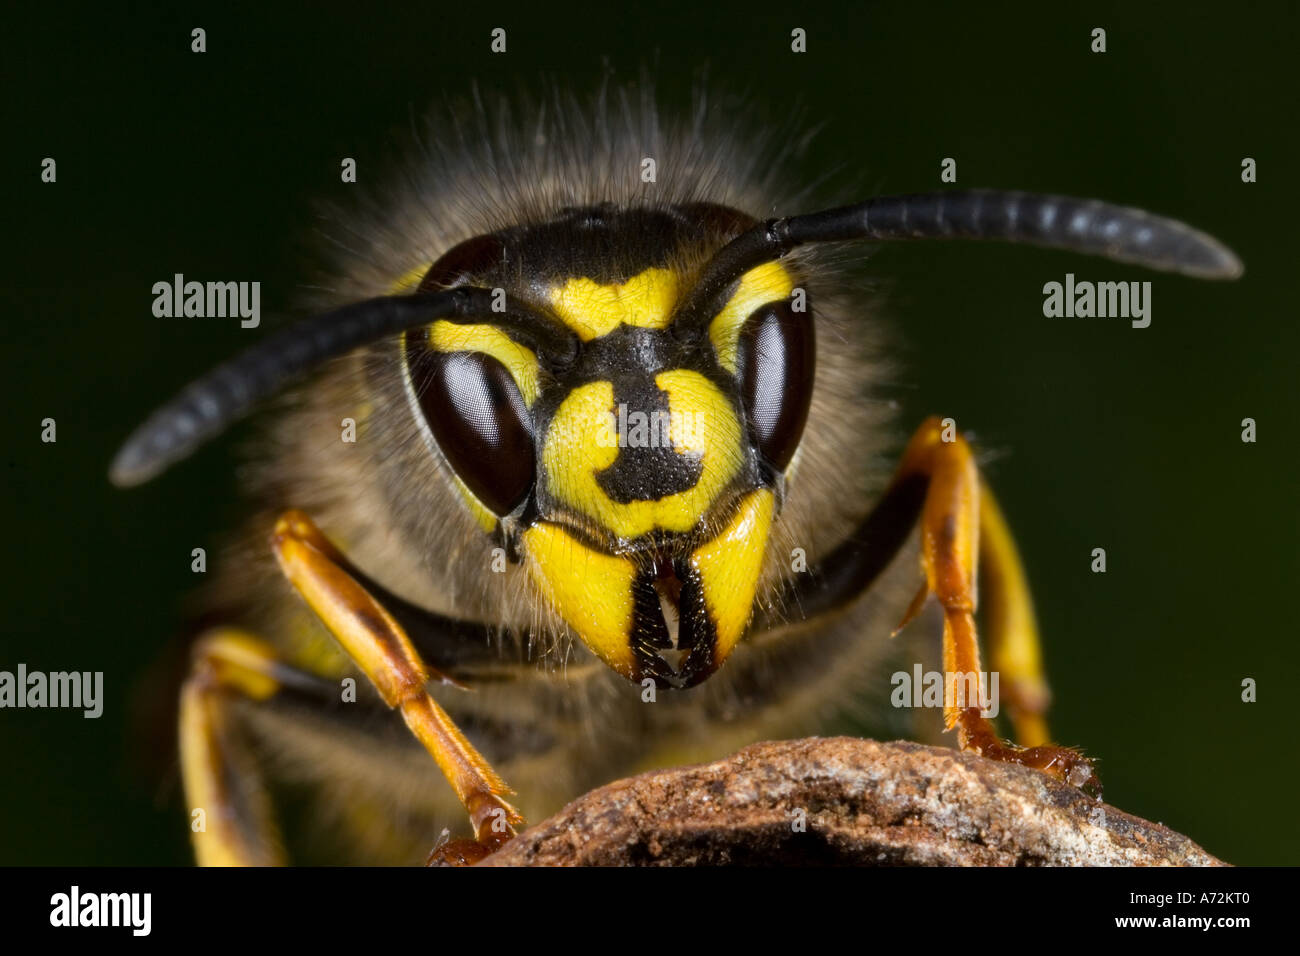 Guêpe commune Vespula Vulgaris vue détaillée de la tête montrant marques distinctives potton bedfordshire Photo Stock